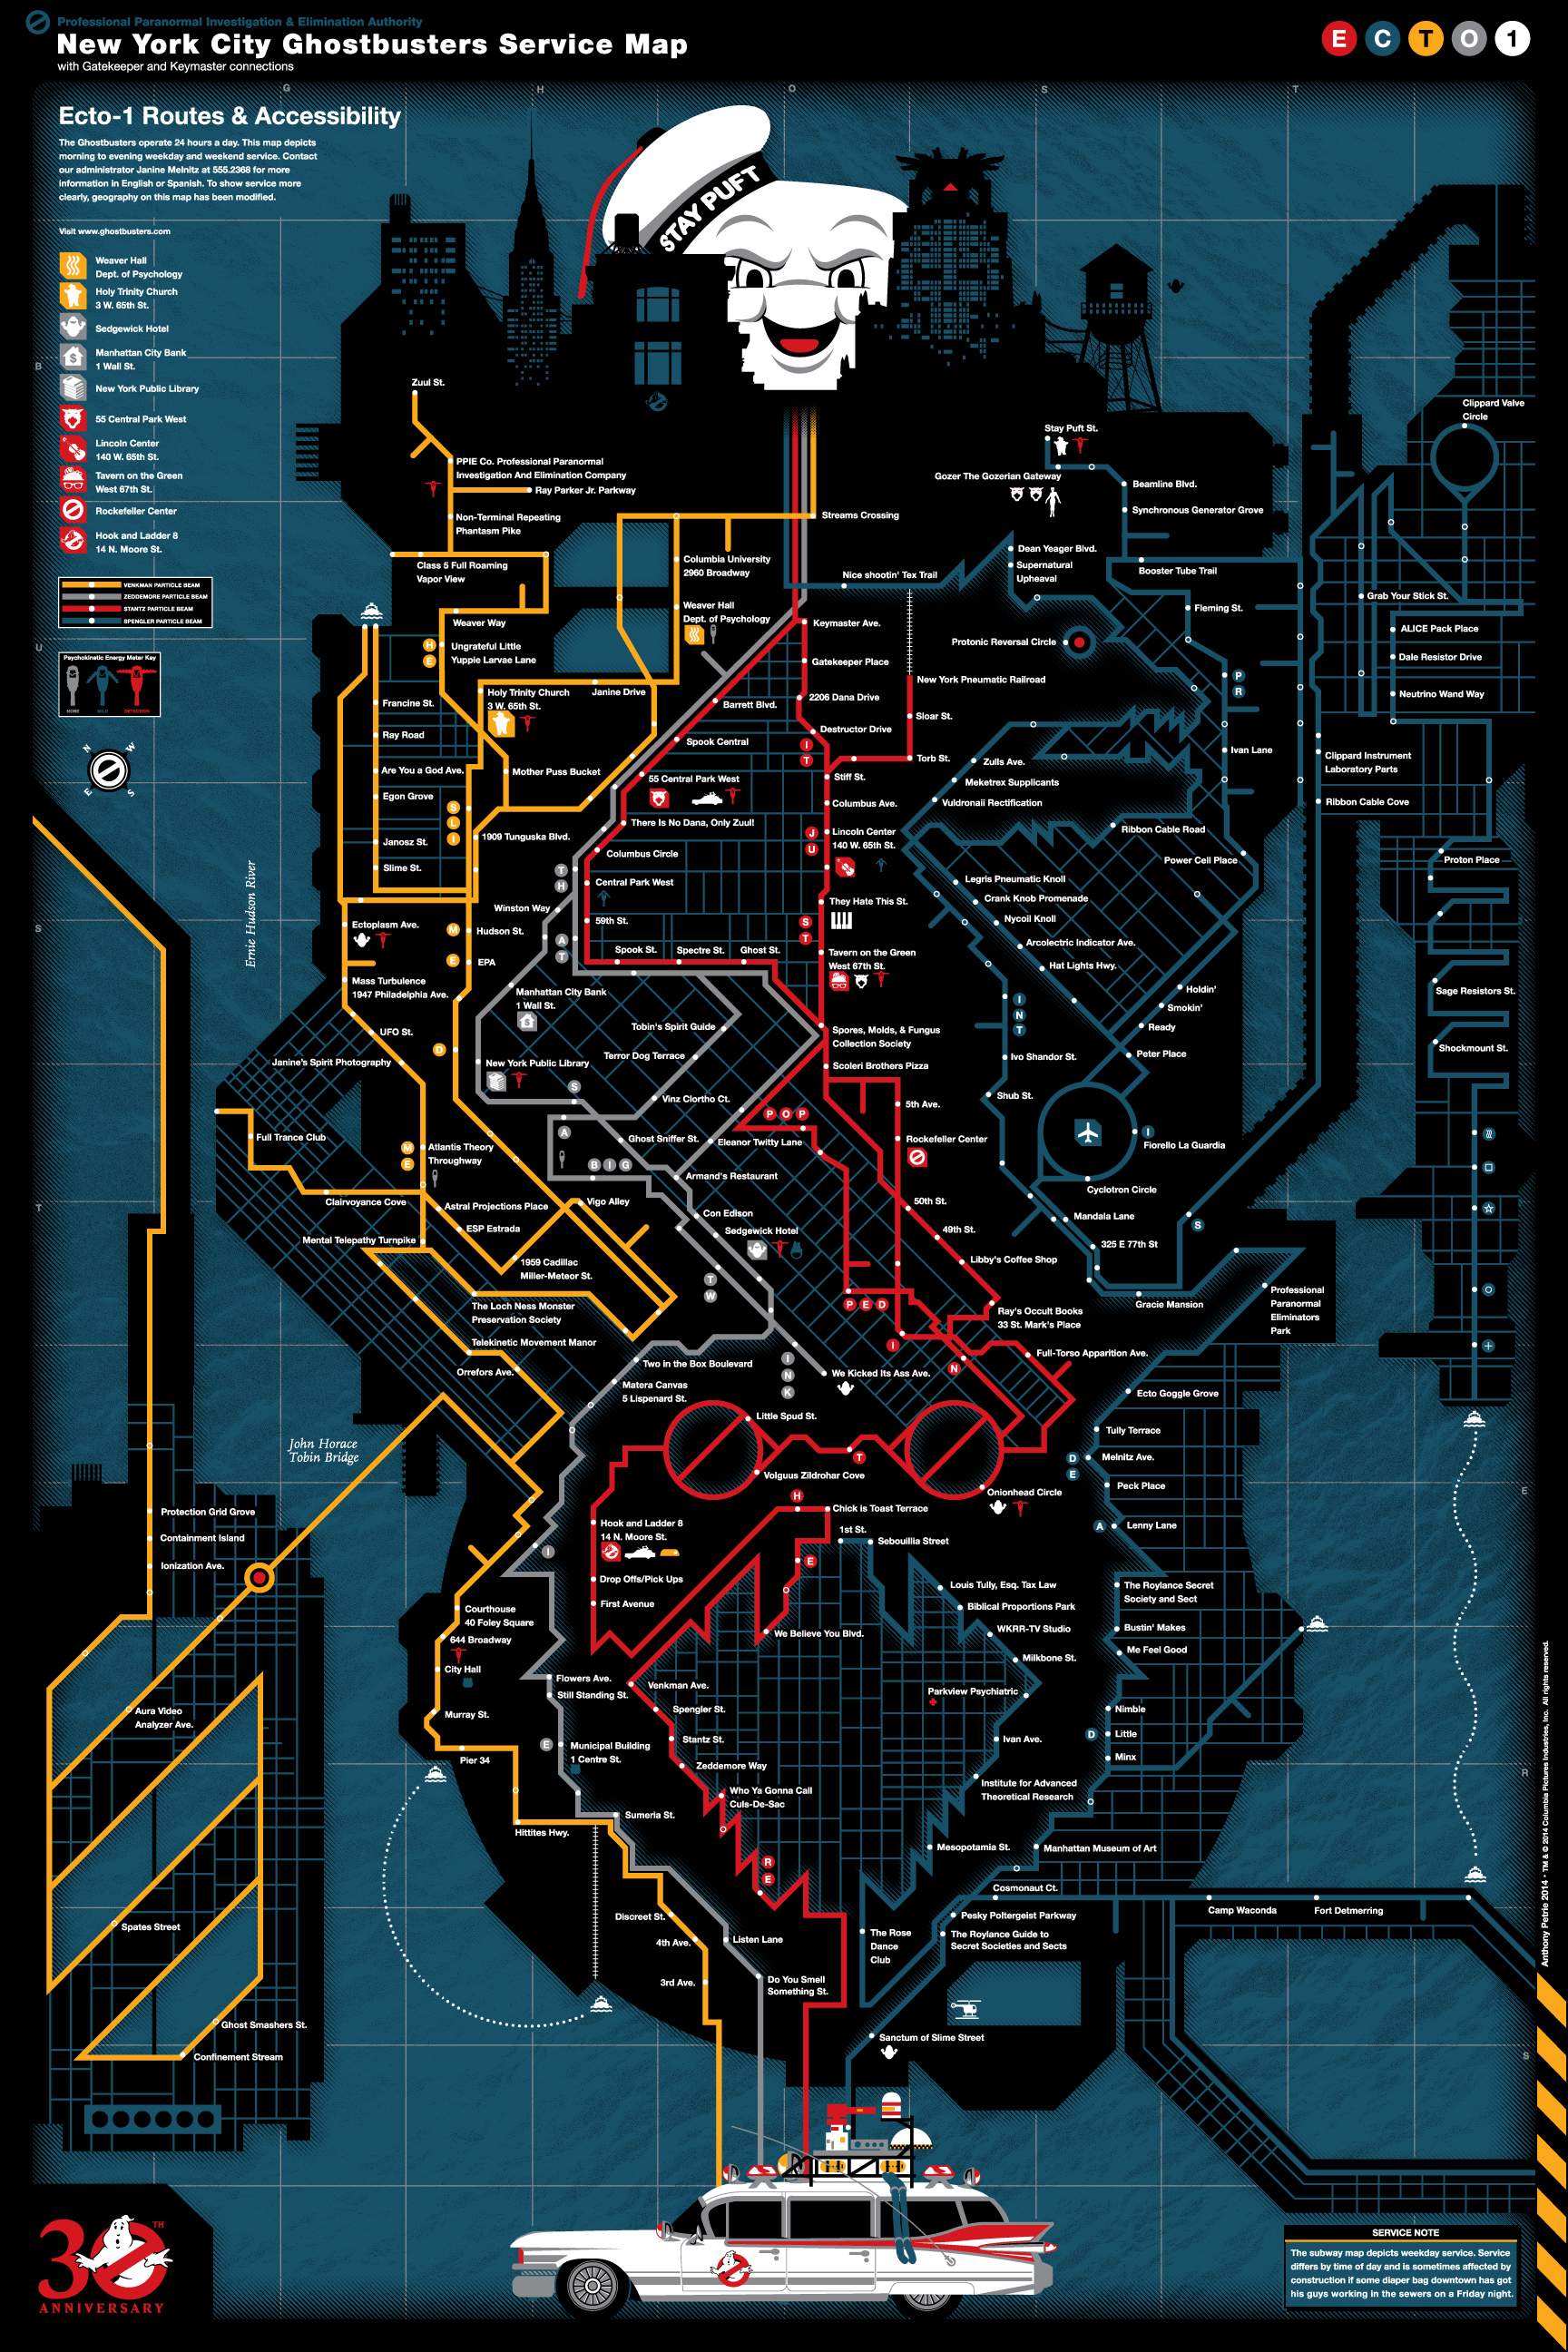 The NYC 39Ghostbusters39 Service Map Transforms The Subway